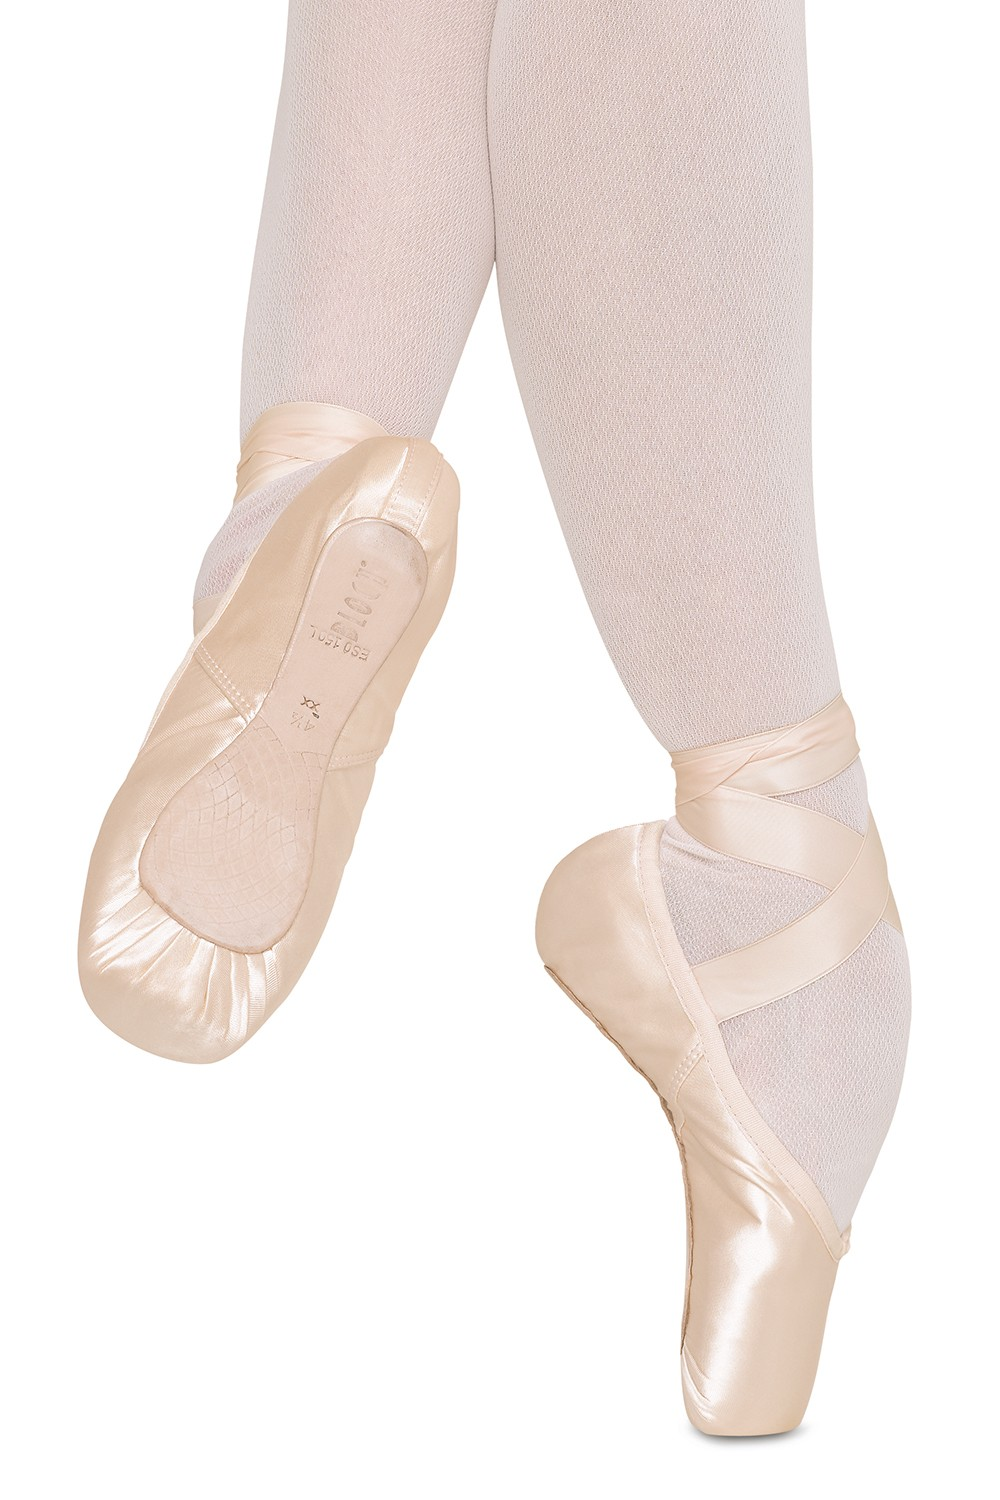 Balance Pointe Shoe Pointe Shoes